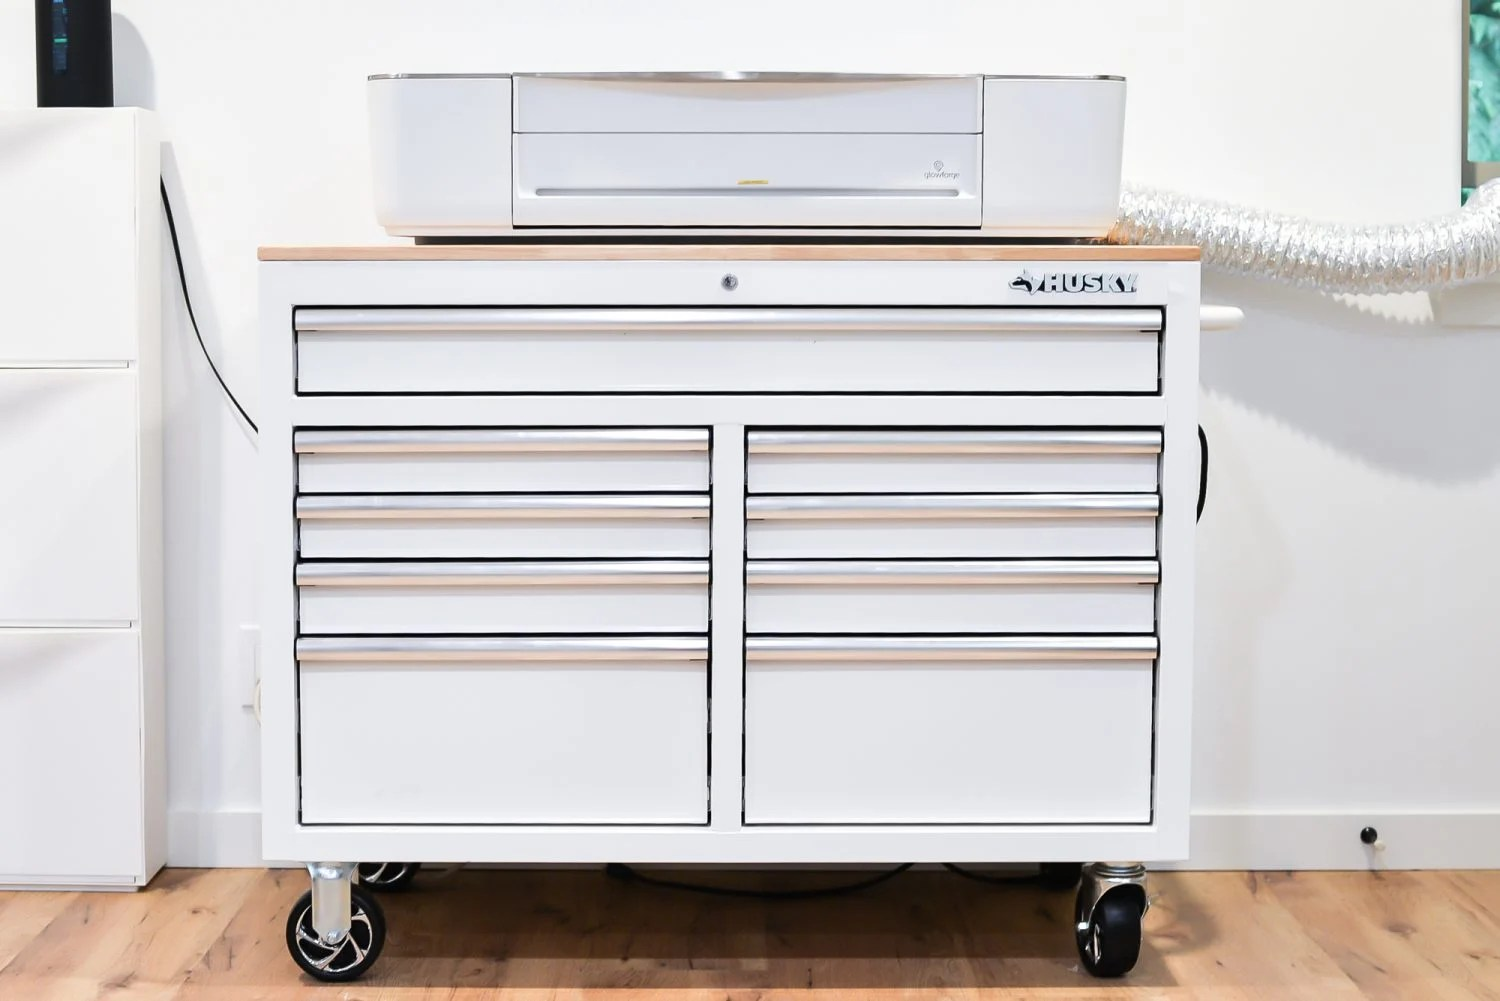 Glowforge sitting on top of Husky Tool Chest.